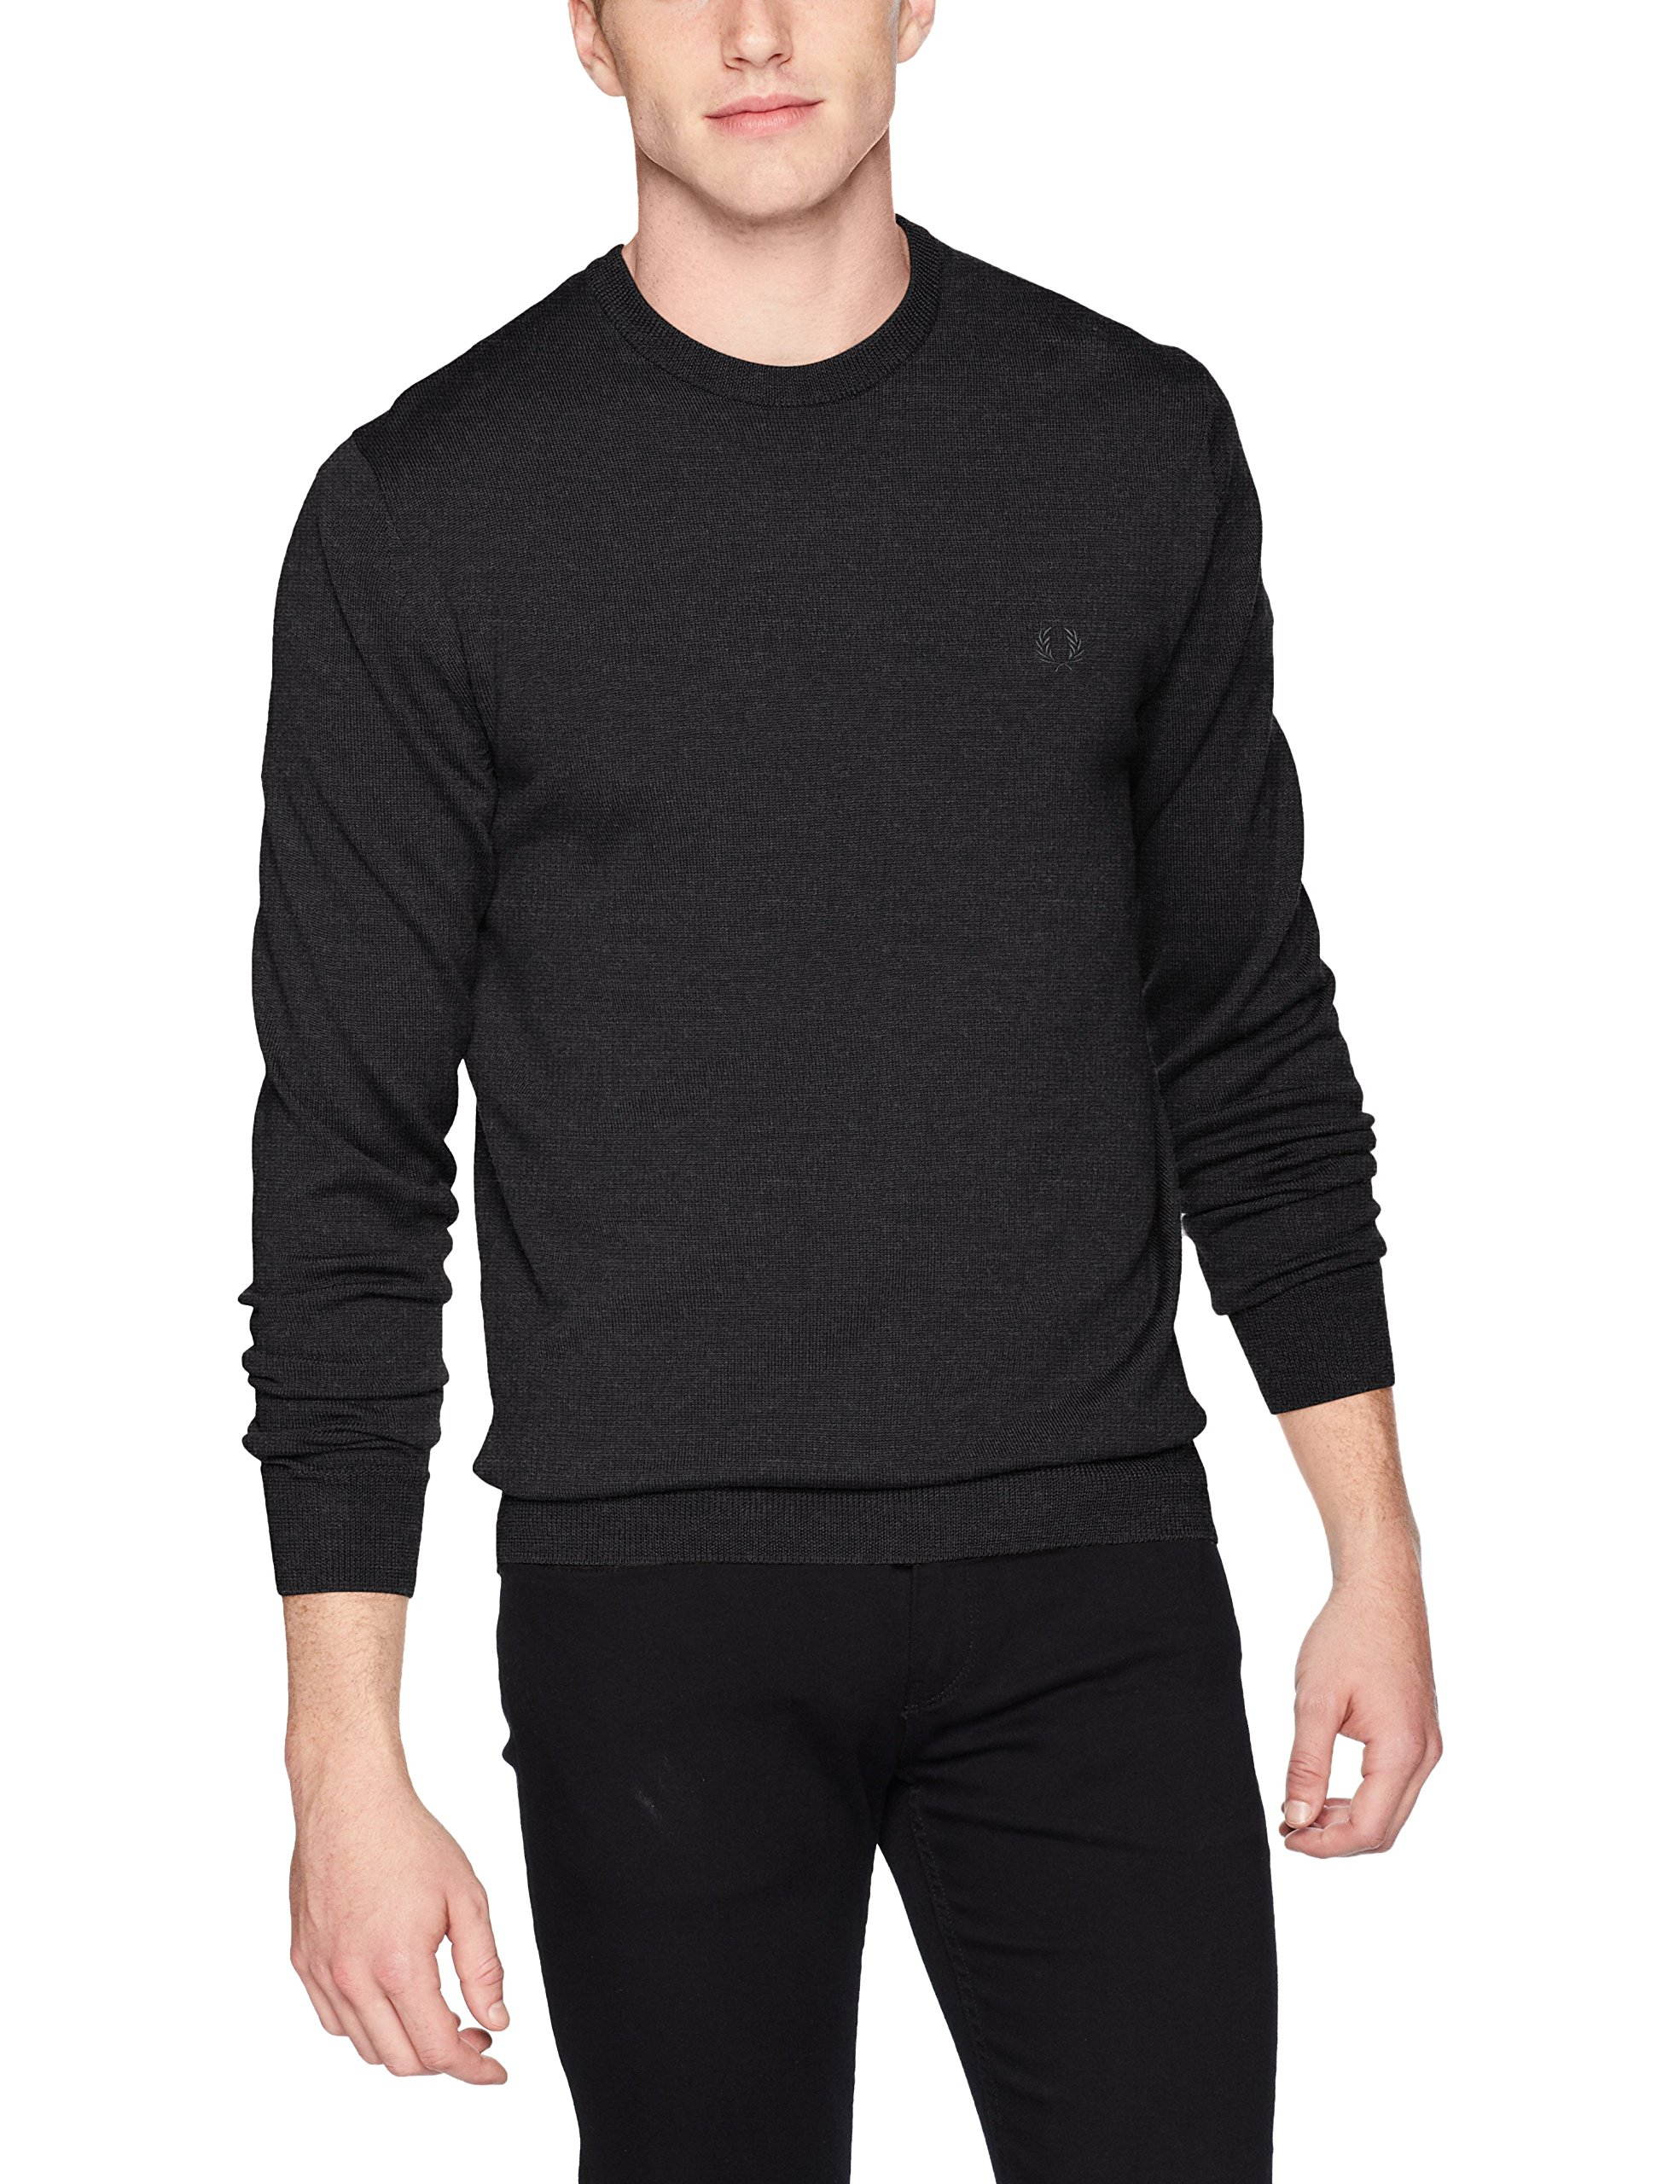 Fred Perry Men's Classic Crew Neck Sweater, Black Marl, X-Large